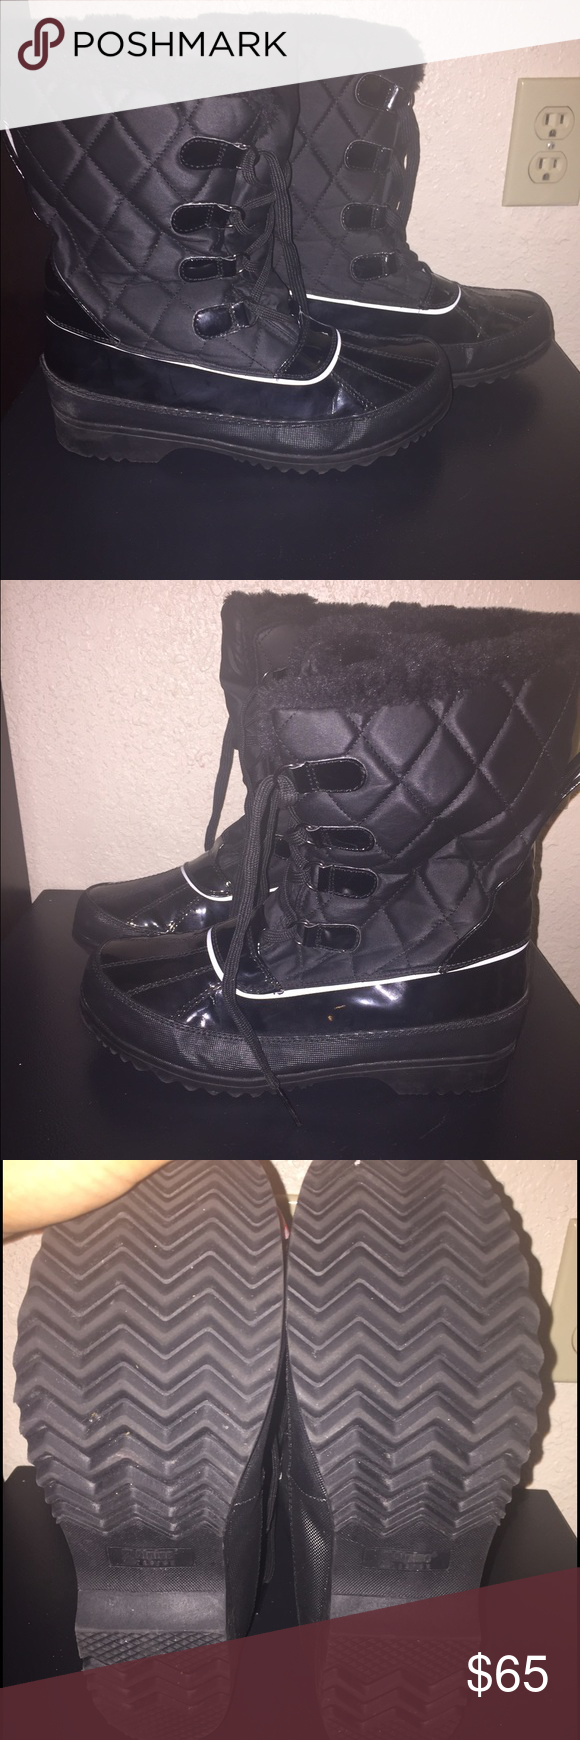 Winter boots Alpine design winter boots pre-owned. Size 9 women's Shoes Winter & Rain Boots